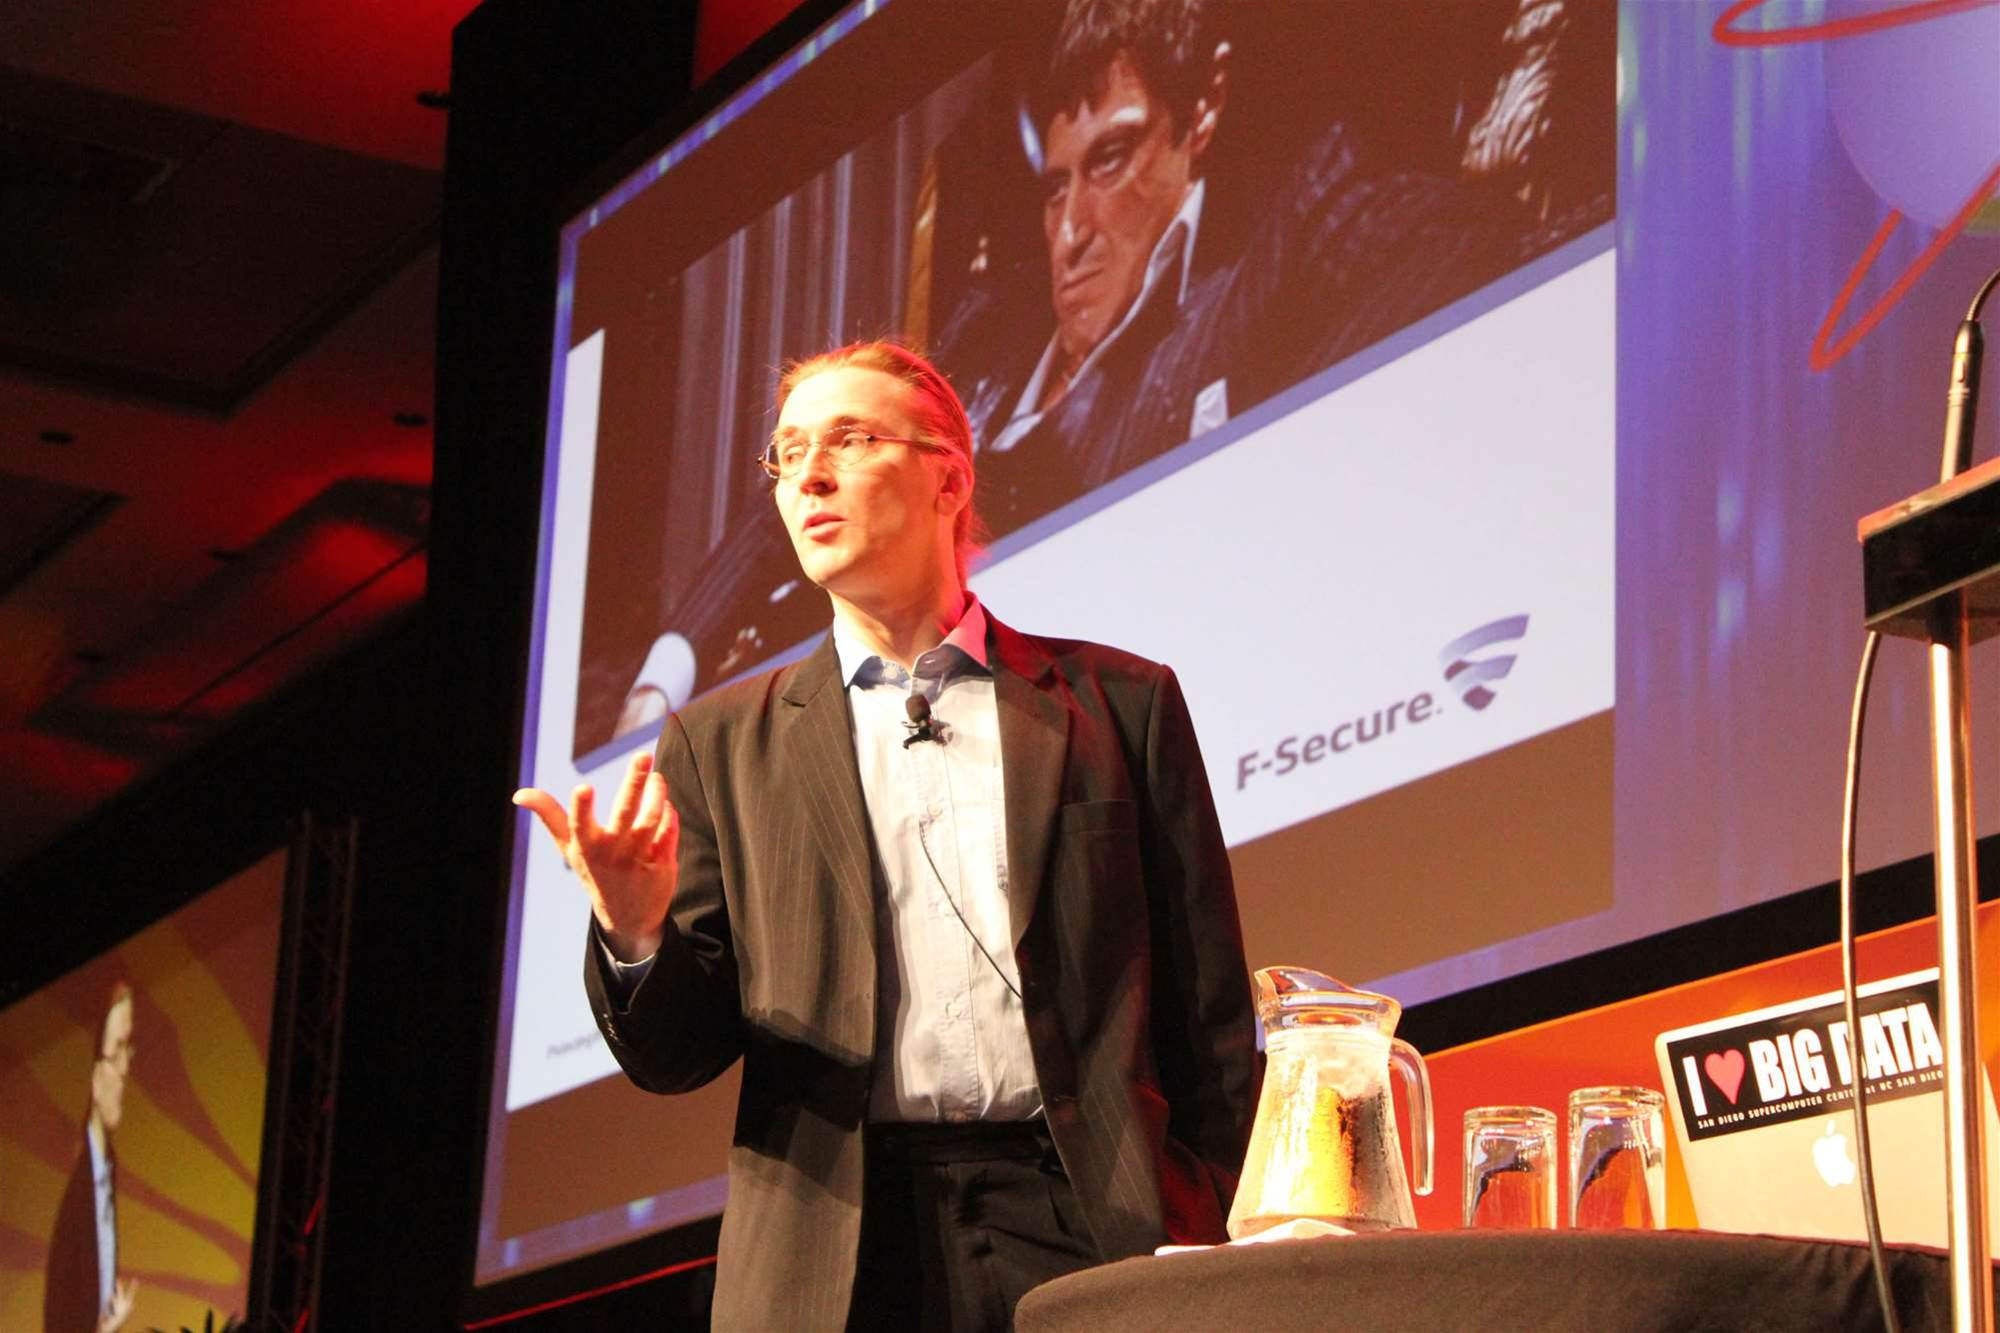 F-Secure chief research officer Mikko Hypponen opened AusCERT 2012 with a keynote on crime. He noted concern with the rapid expansion of defense contractors into infosec.